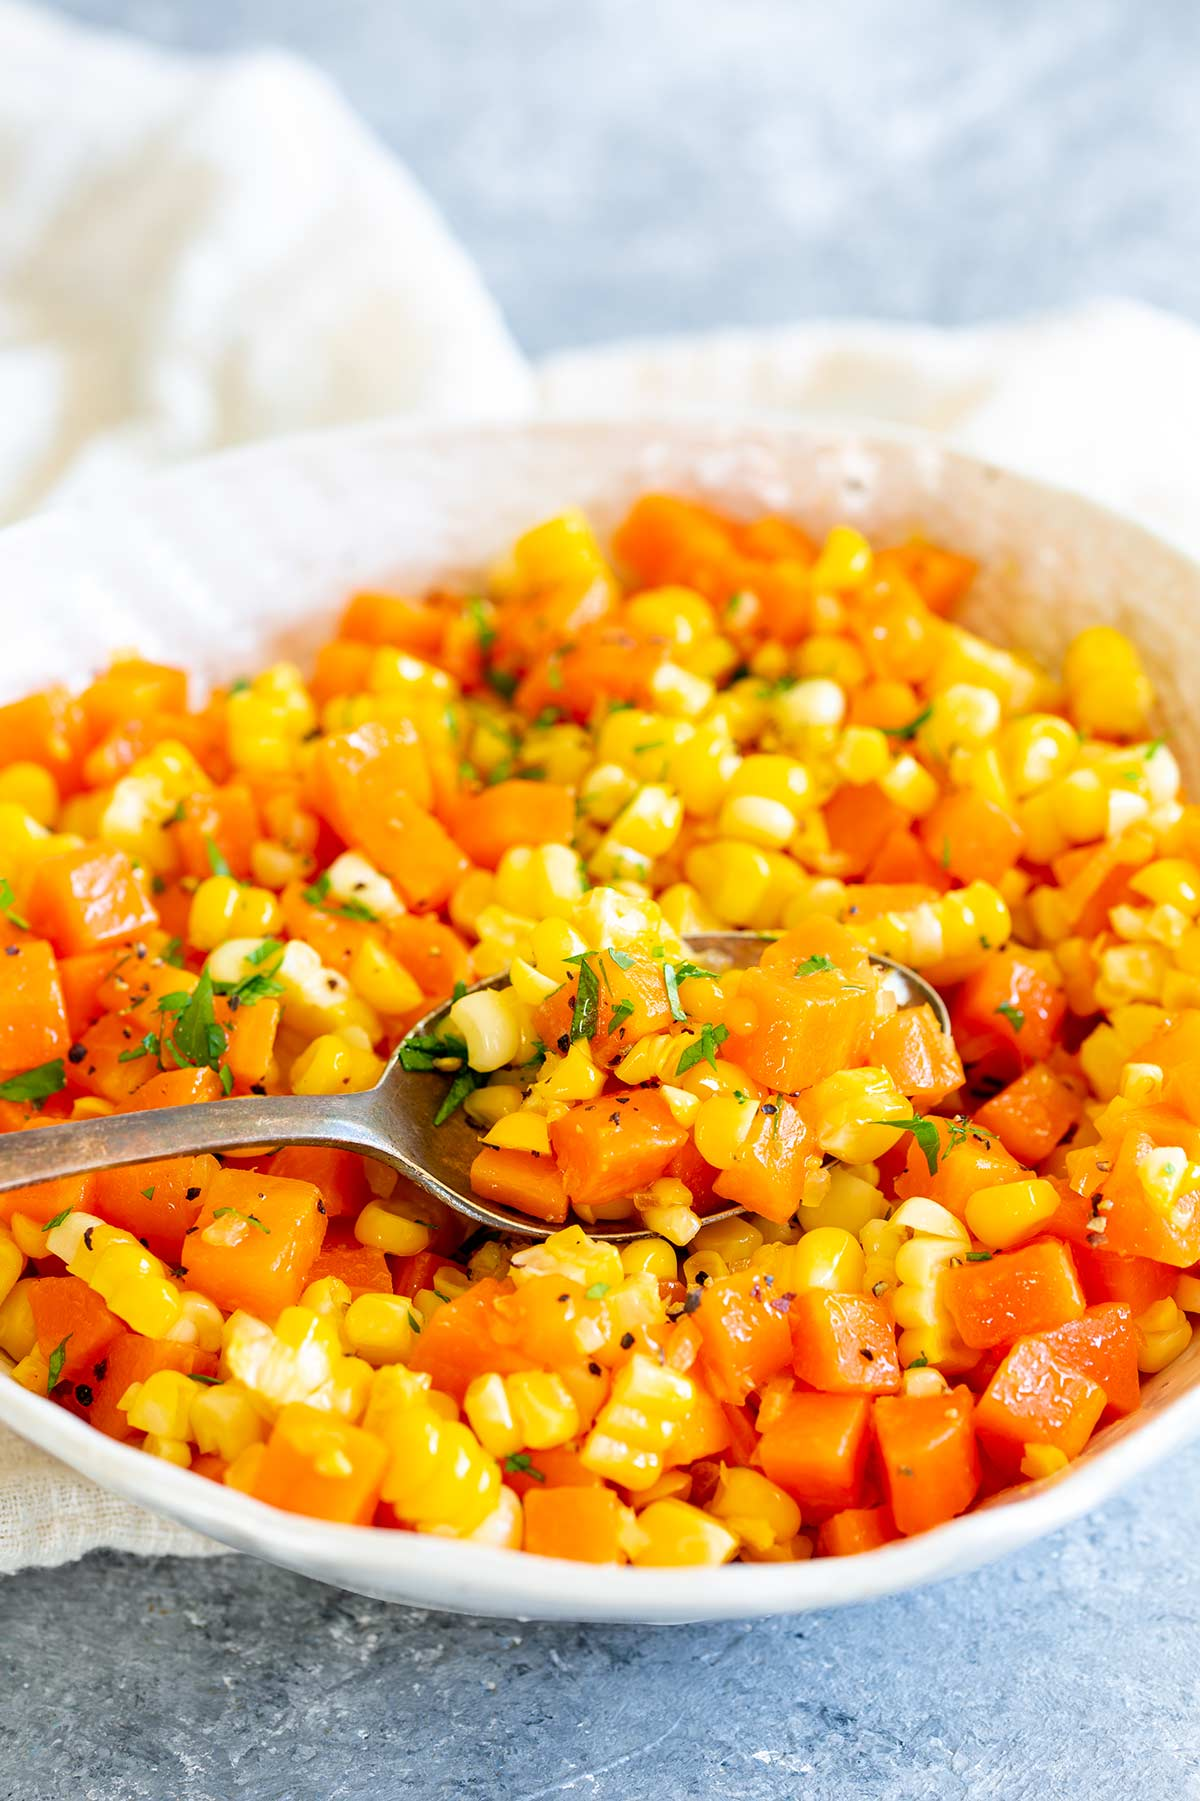 a spoon scooping up carrots and corn from a white bowl